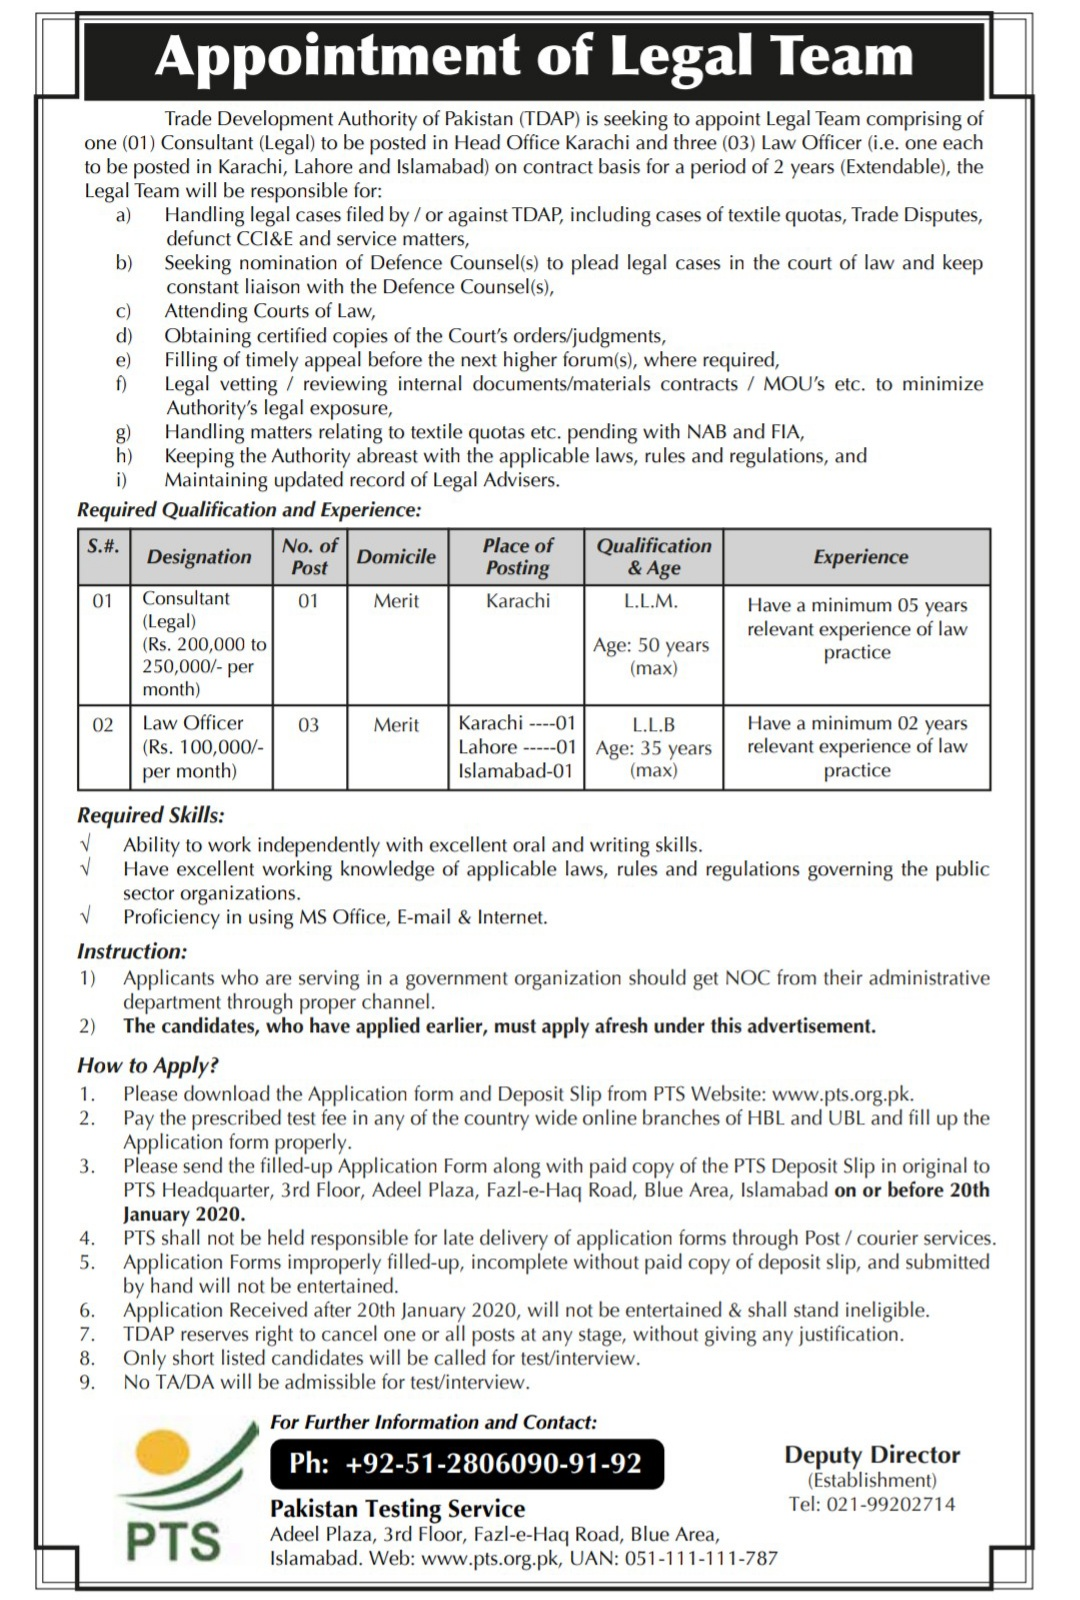 Trade Development Authority of Pakistan TDAP Jobs PTS Result